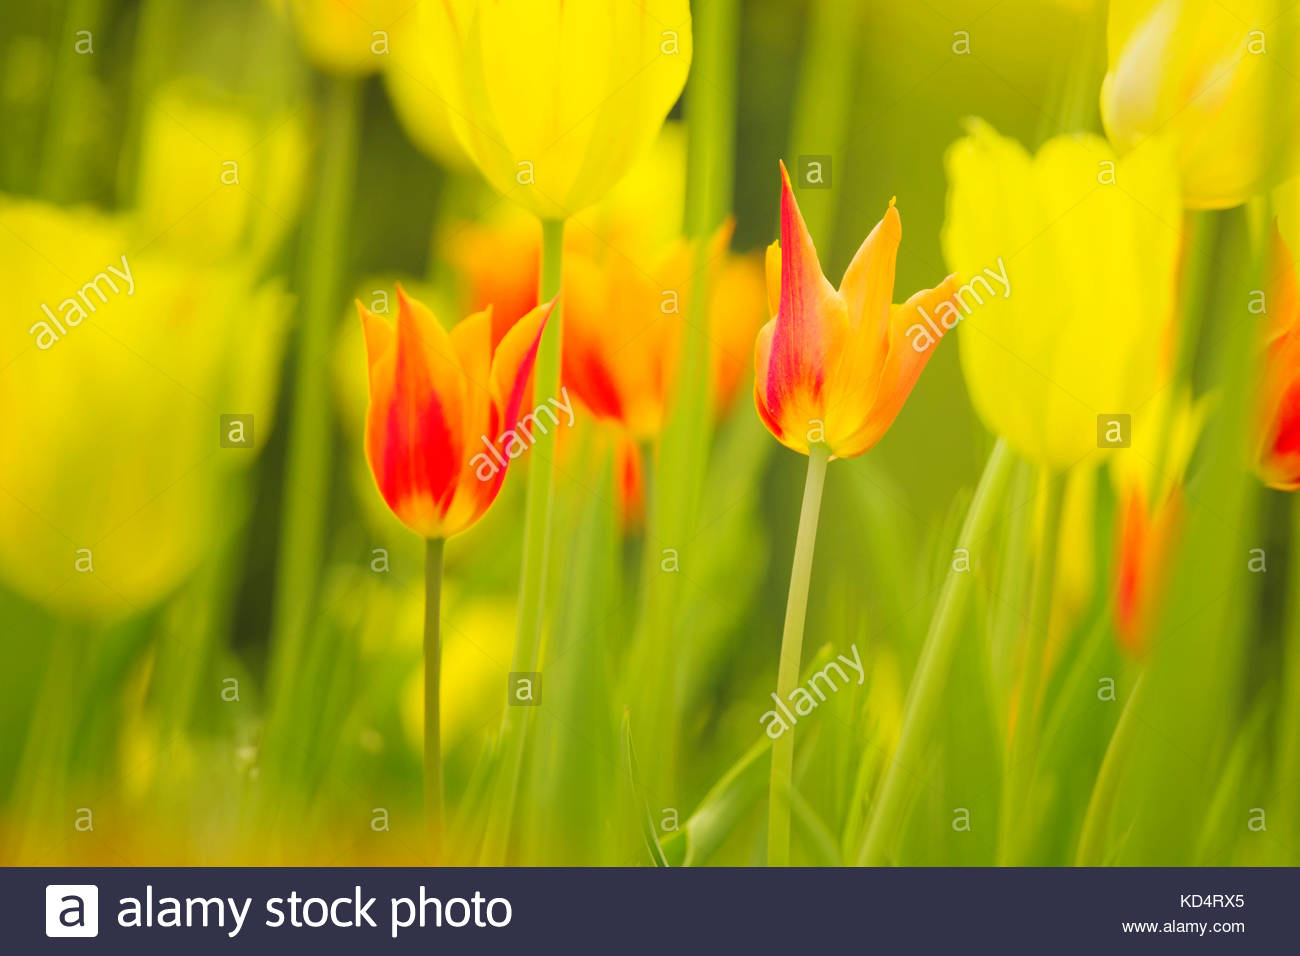 Sunny Yellow Red Colored Beautiful Tulip Flowers Background Stock